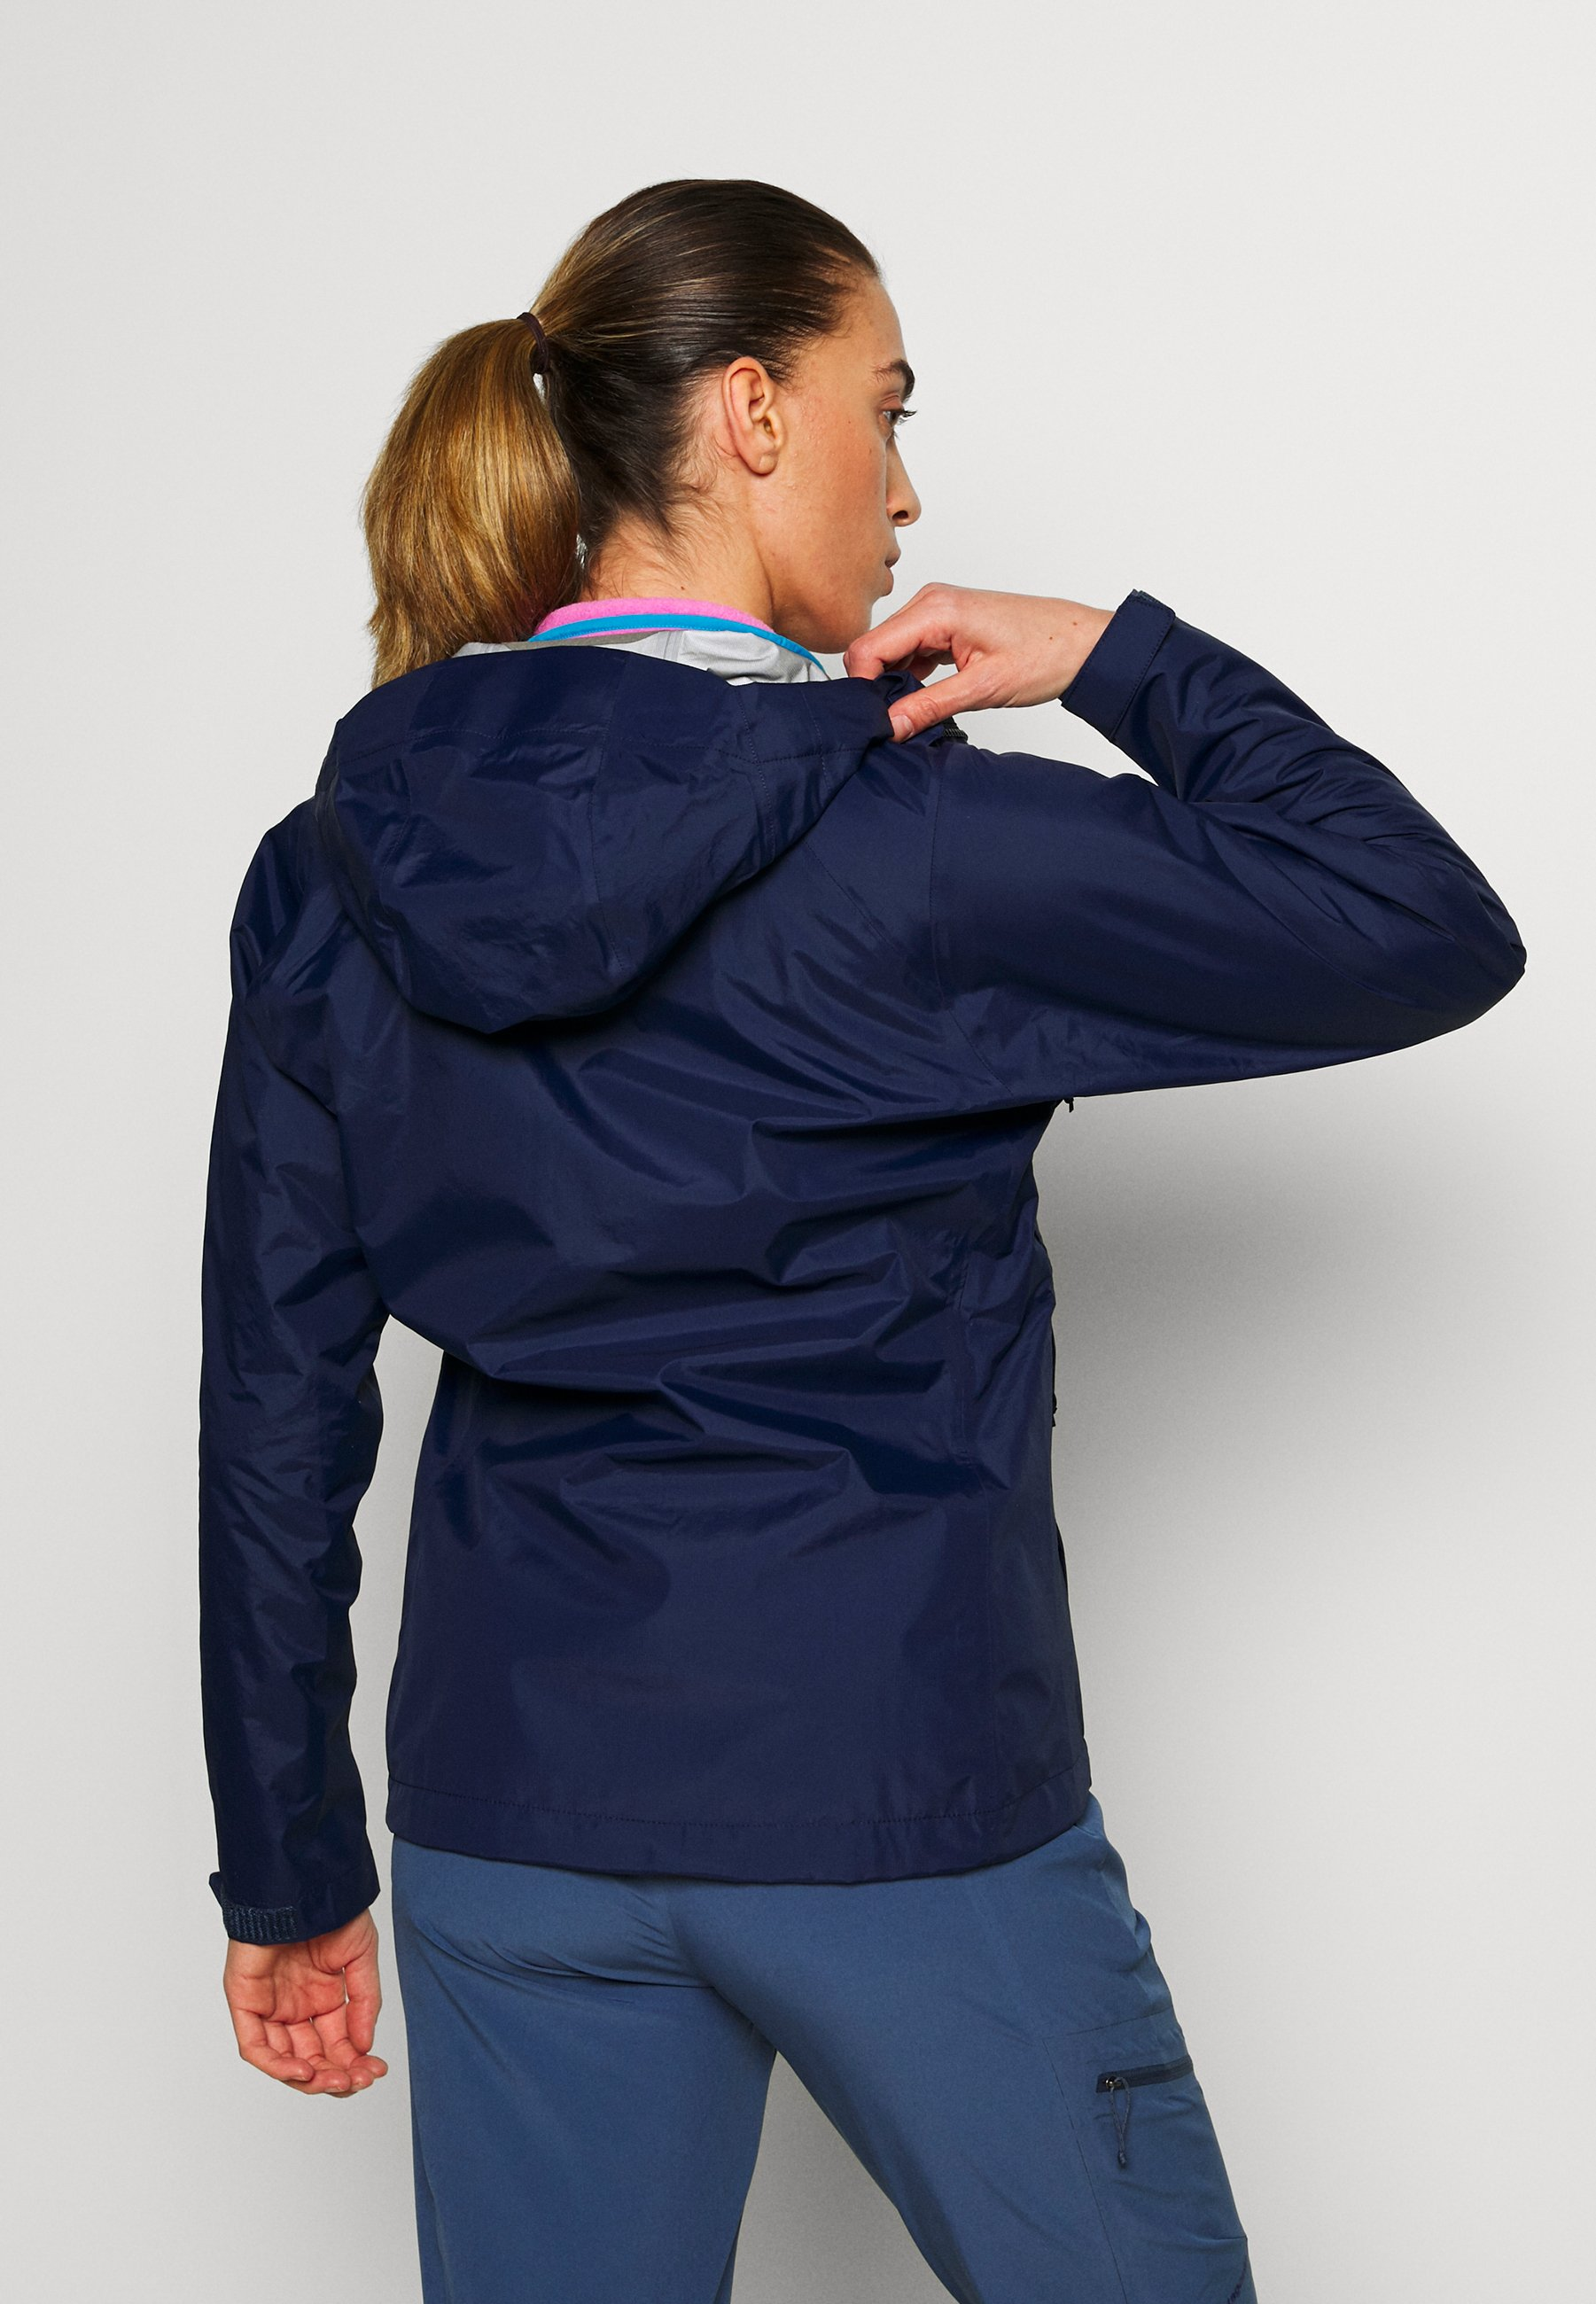 For Sale Women's Clothing Patagonia TORRENTSHELL Hardshell jacket classic navy oDrR6jaMq